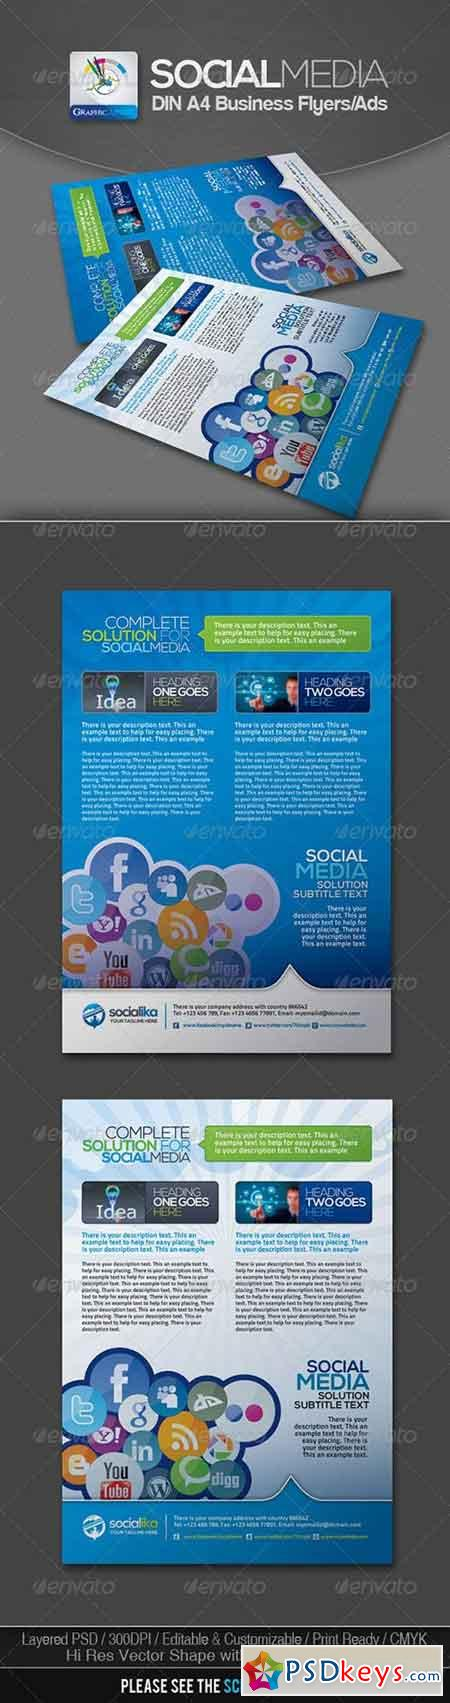 Social Media Business Flyers v.2 3023822